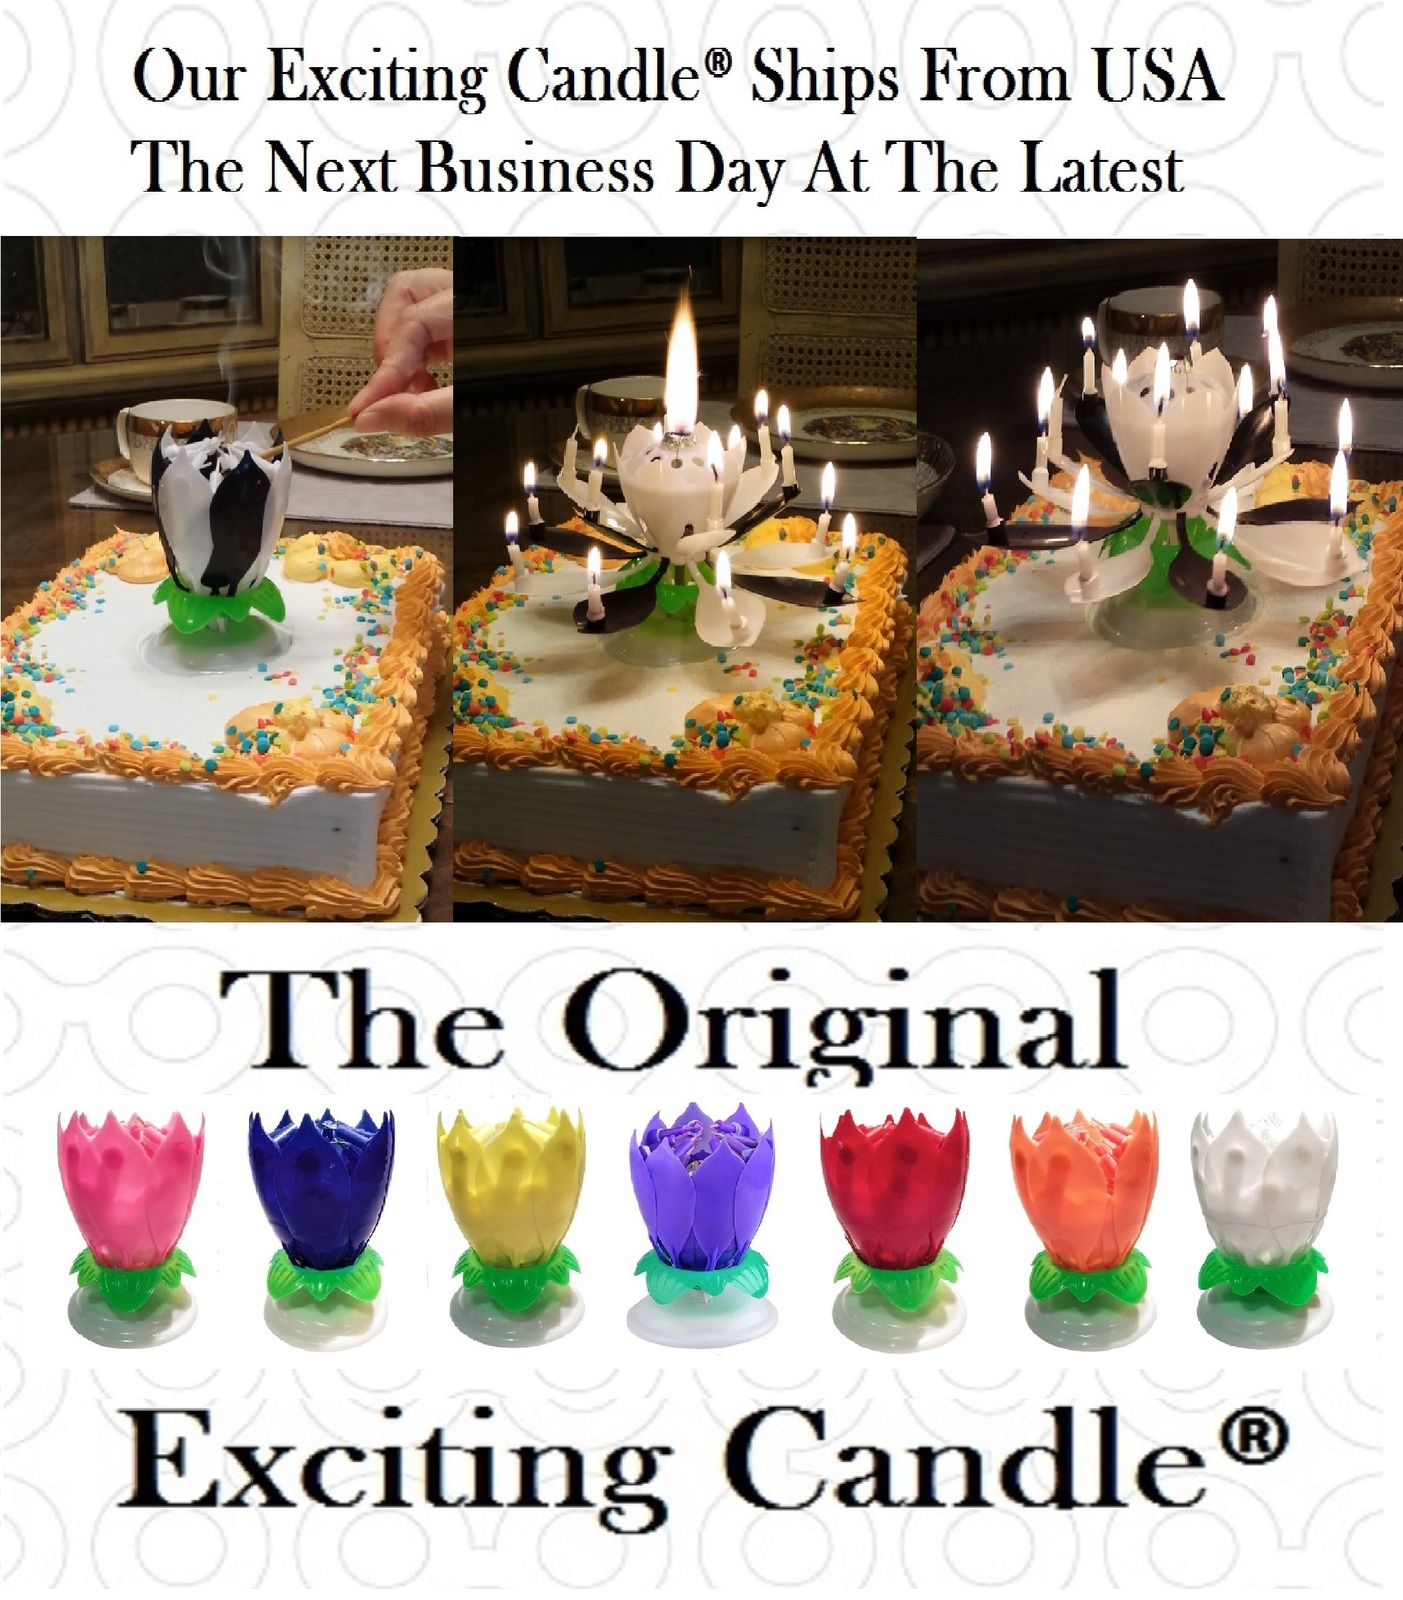 1 Rainbow + 1 BL/WH  Amazing Lotus Flower Music Happy Birthday EXCITING CANDLE